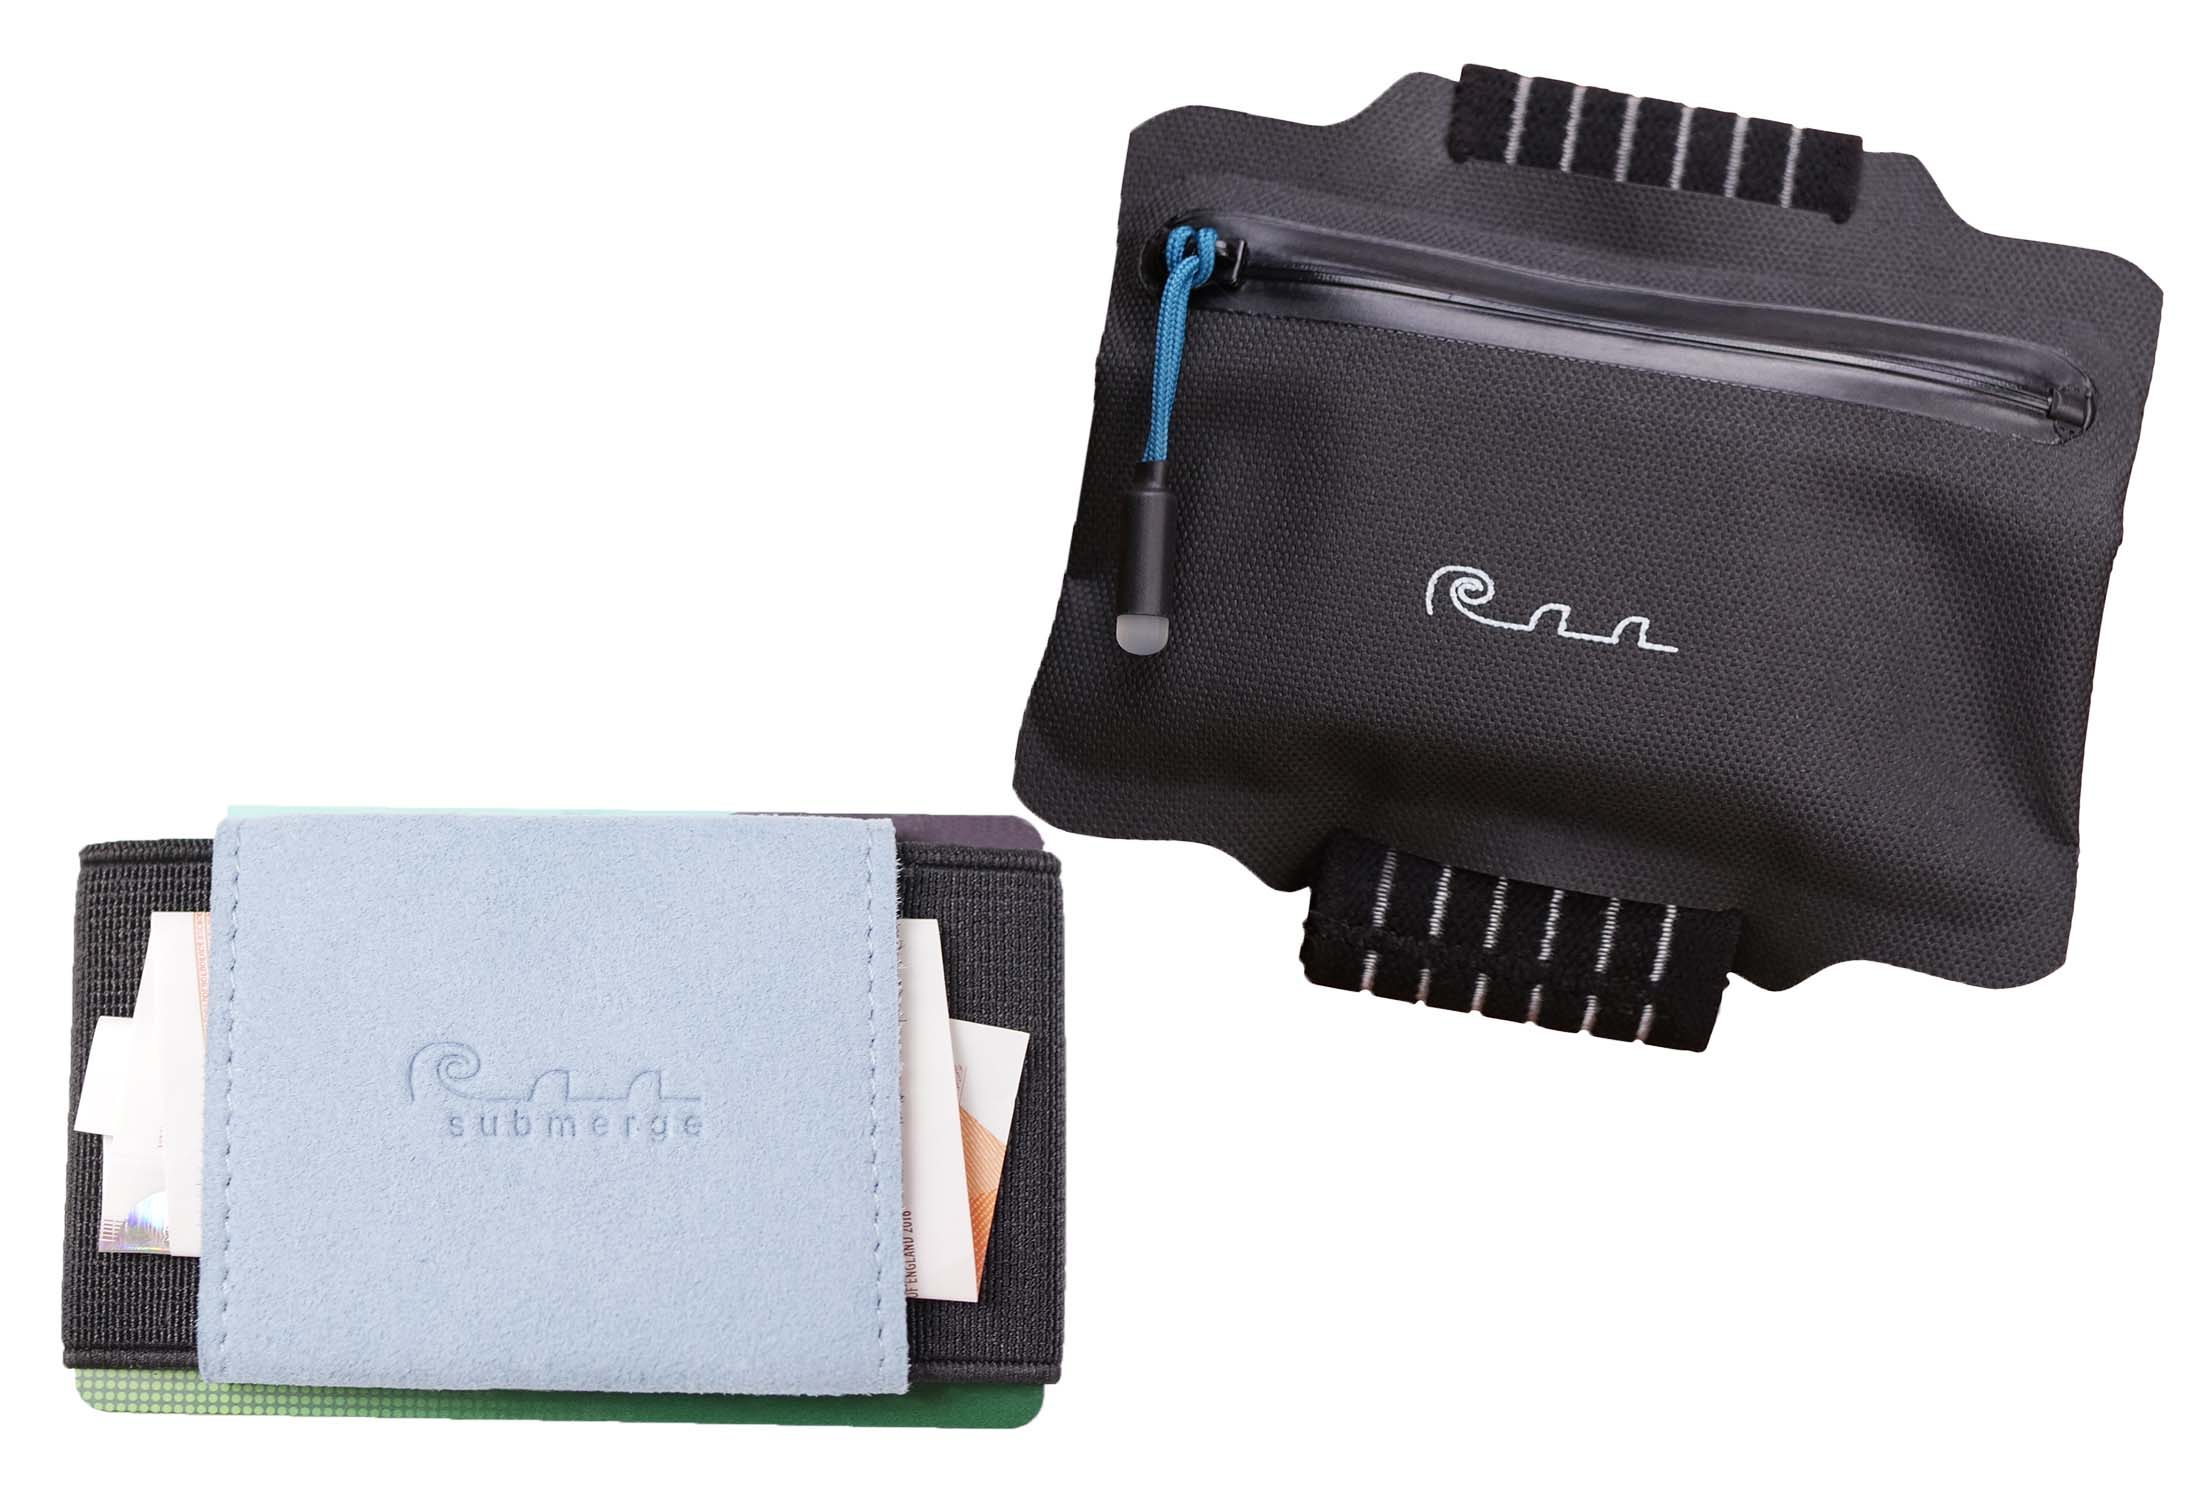 submerge wallet and cardholder